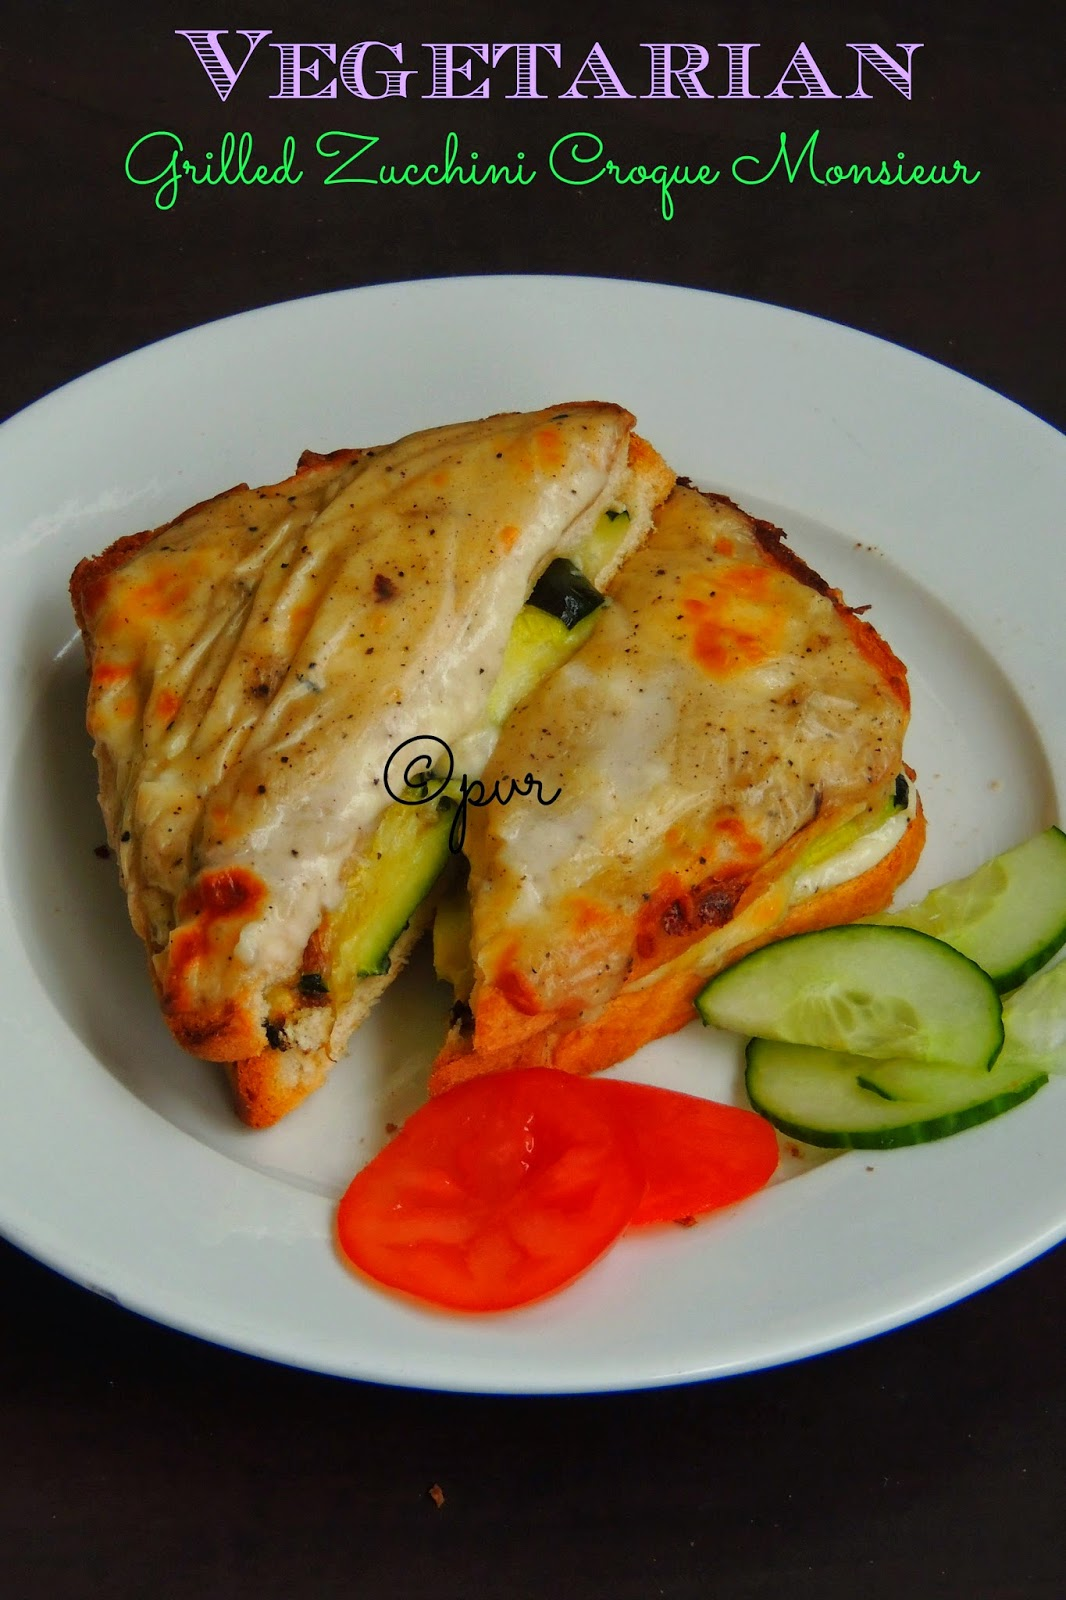 Priya's Versatile Recipes: Vegetarian Grilled Zucchini Croque Monsieur